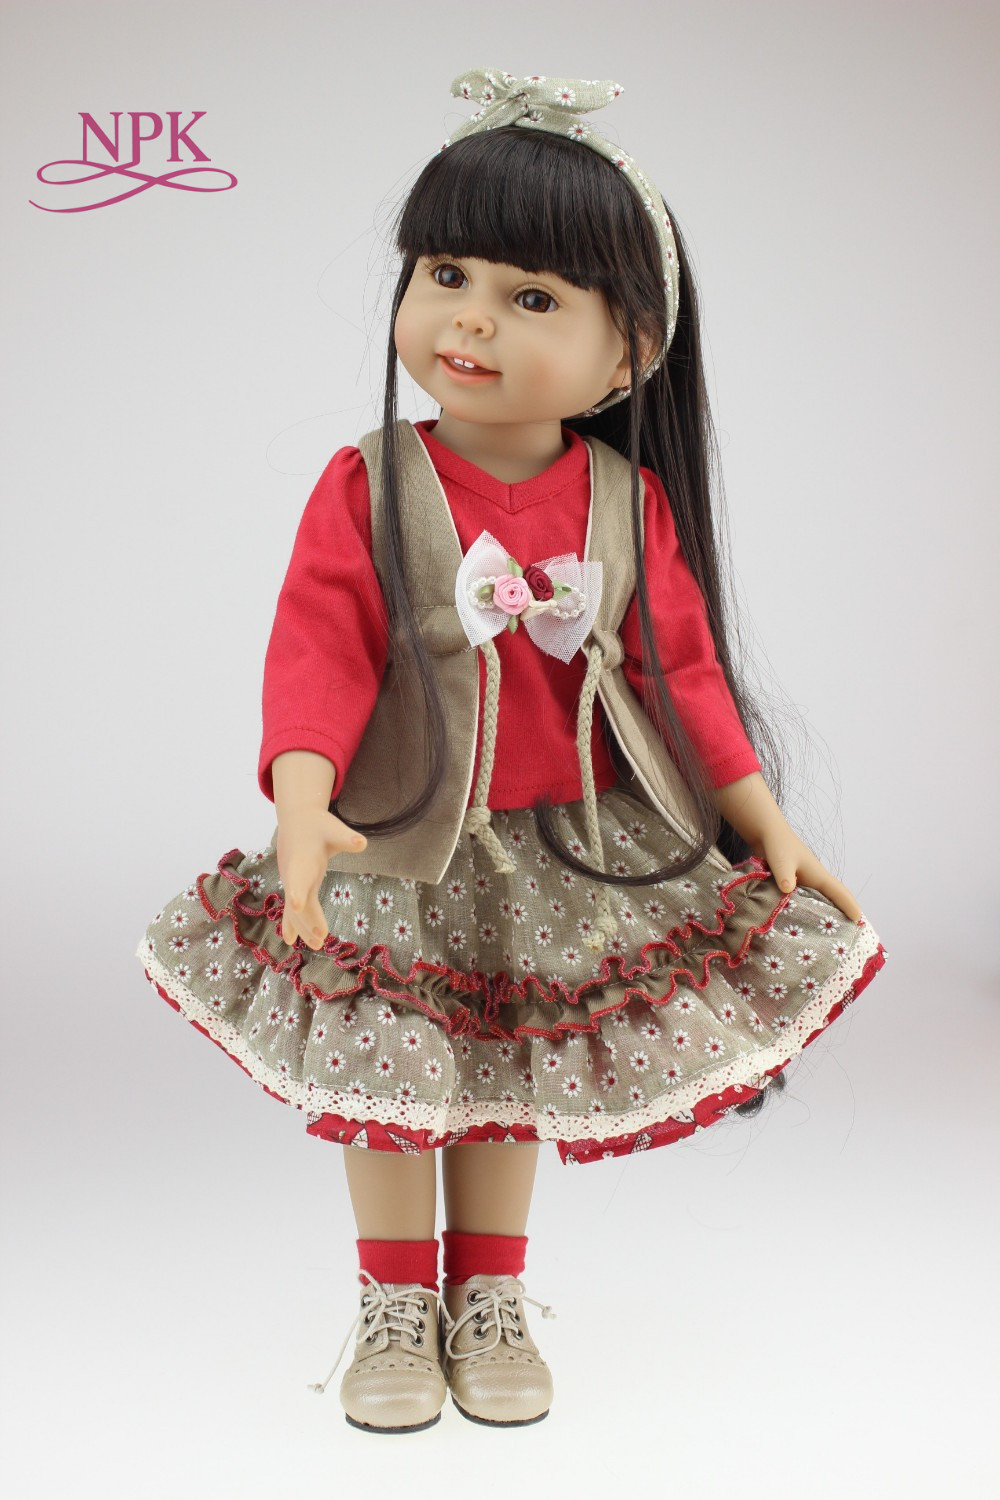 18inch 45cm Doll Fashion Full Vinyl Girl Bjd Doll Collection SD Realistic doll Alive Toys Handmade Kids Princess18inch 45cm Doll Fashion Full Vinyl Girl Bjd Doll Collection SD Realistic doll Alive Toys Handmade Kids Princess